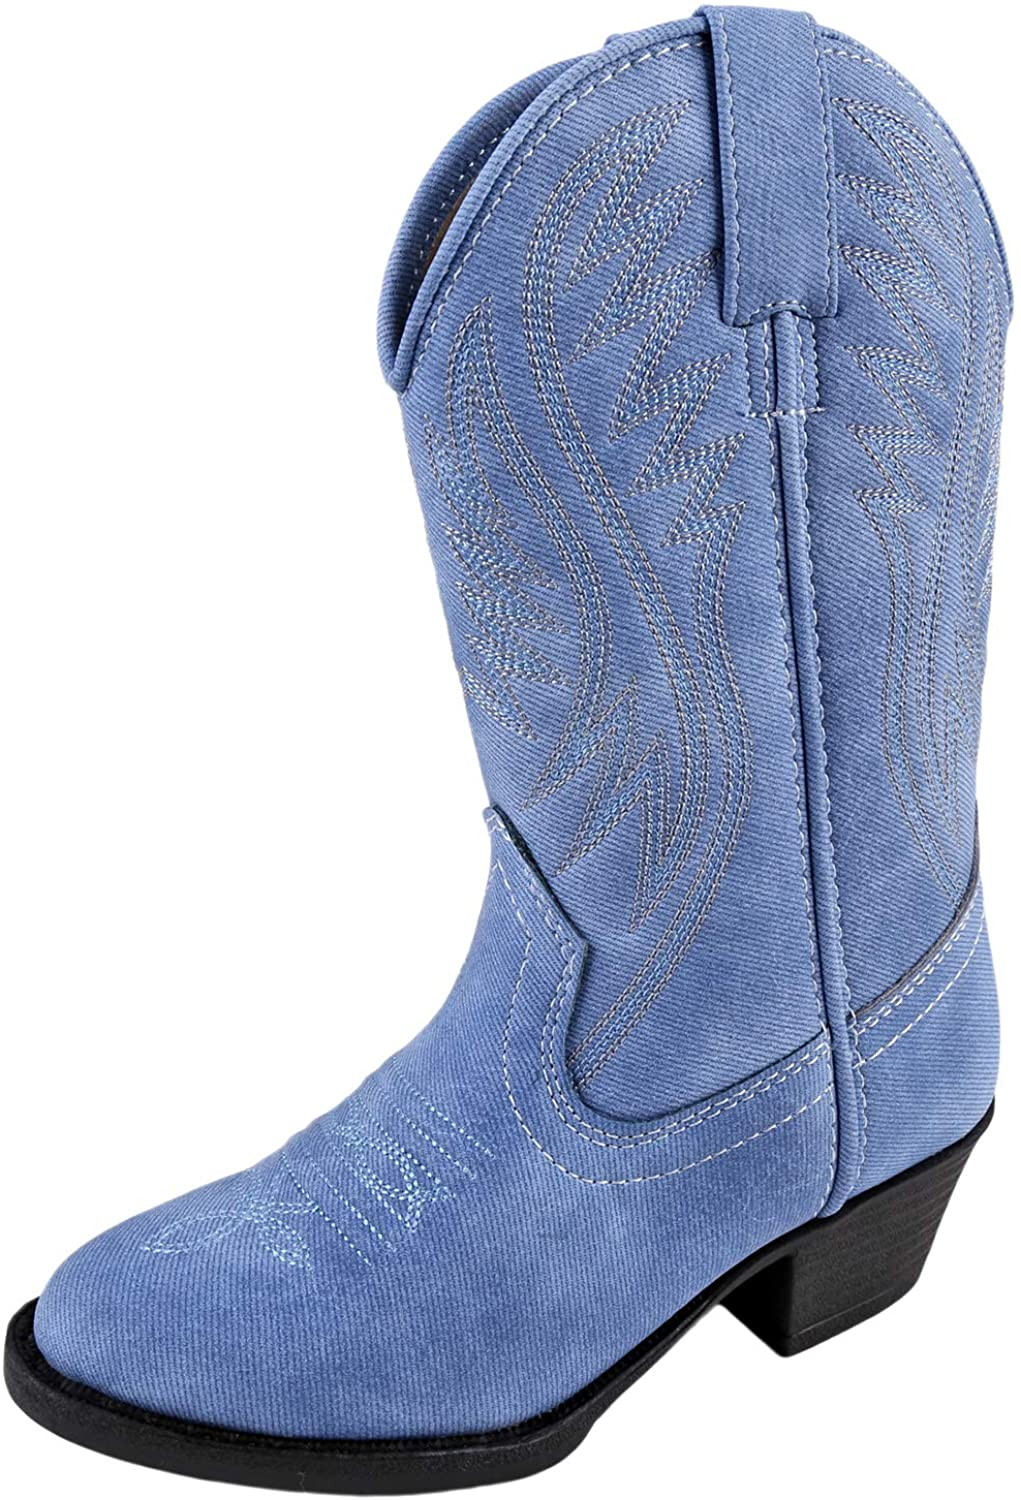 Smoky Mountain Girls' Mesquite Western Boot Round Toe Indigo 7 D